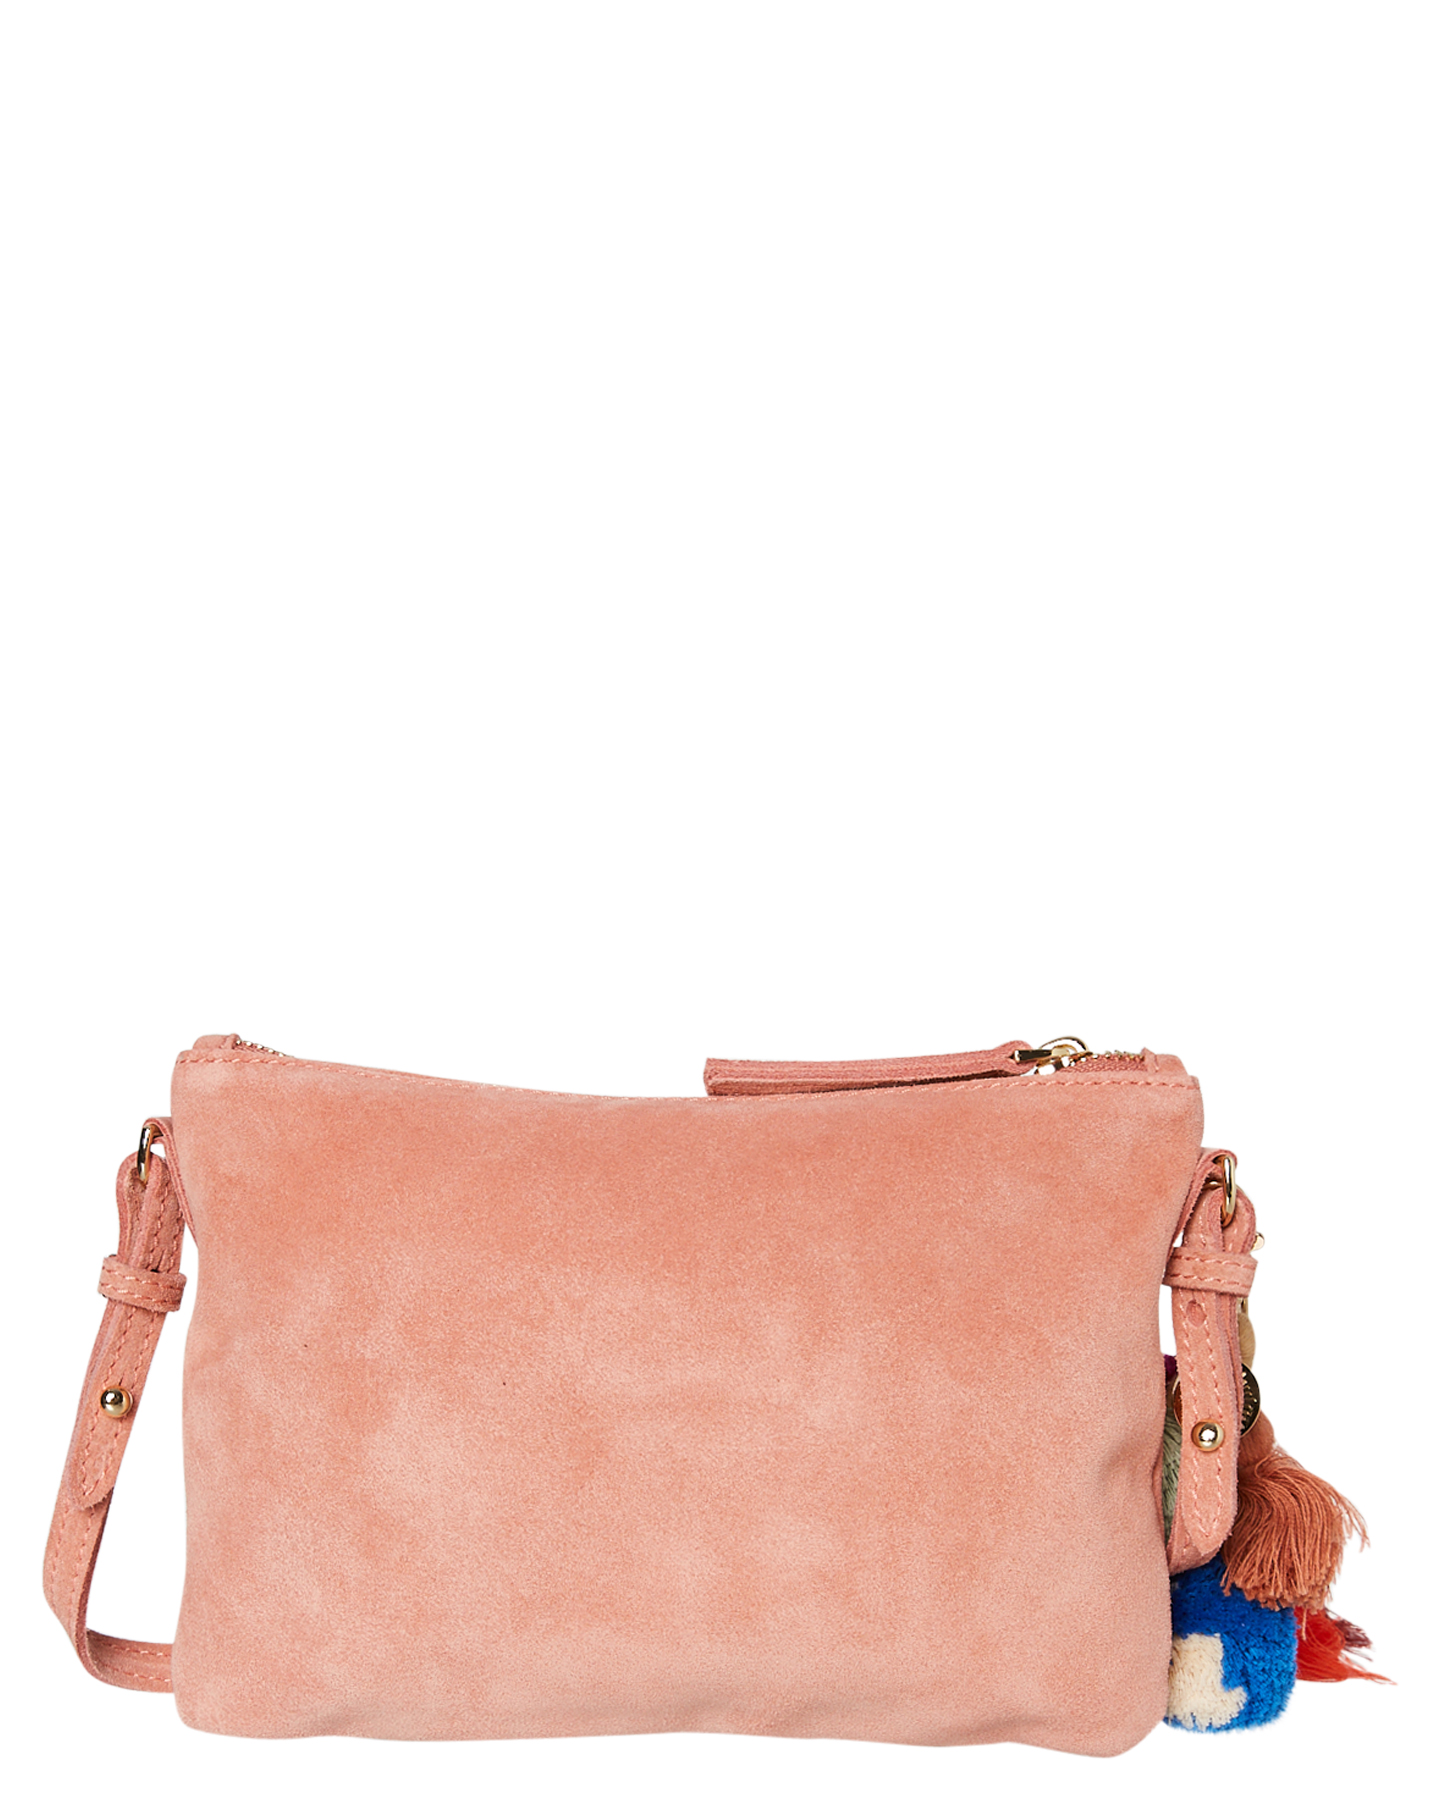 New-The-Wolf-Gang-Women-039-s-Rio-Cross-Body-Bag-Suede-Canvas-Pink thumbnail 18